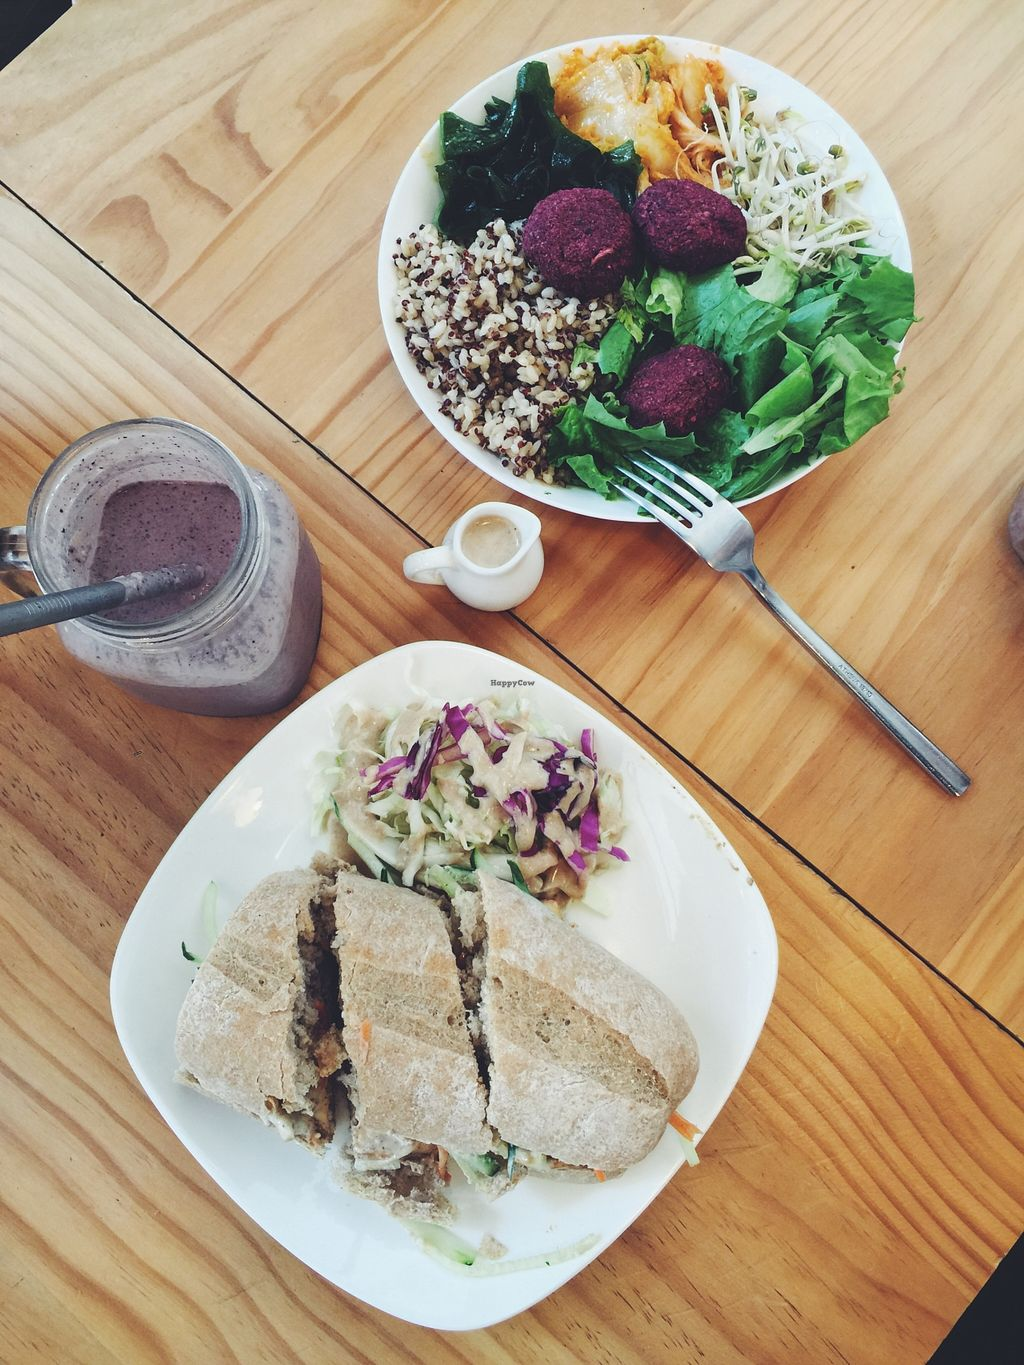 "Photo of Ooh Cha Cha  by <a href=""/members/profile/Thejenwong"">Thejenwong</a> <br/>The Banh mi, beet ball bowl, and the blue goji smoothie  <br/> May 18, 2016  - <a href='/contact/abuse/image/47521/149606'>Report</a>"